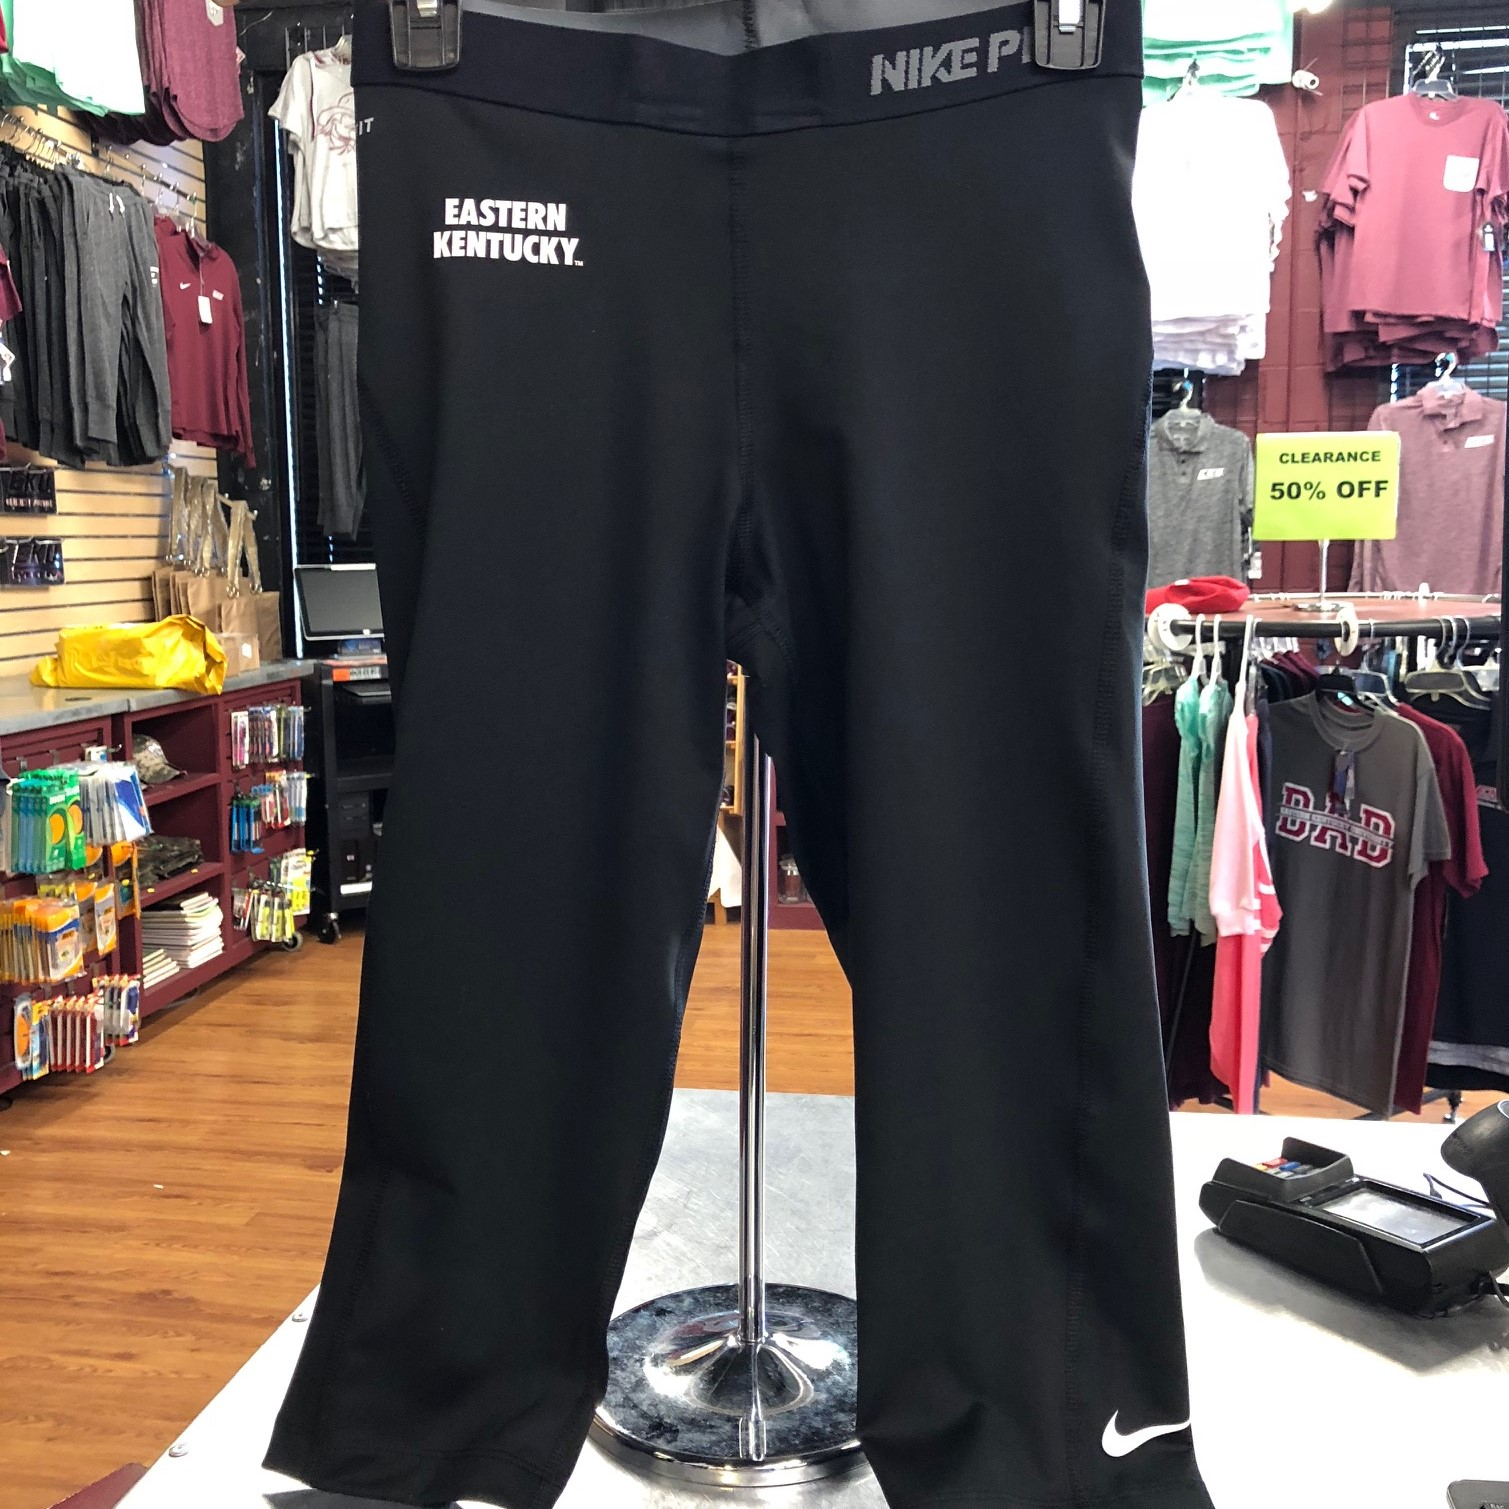 CLEARANCE NIKE DRI-FIT CAPRI